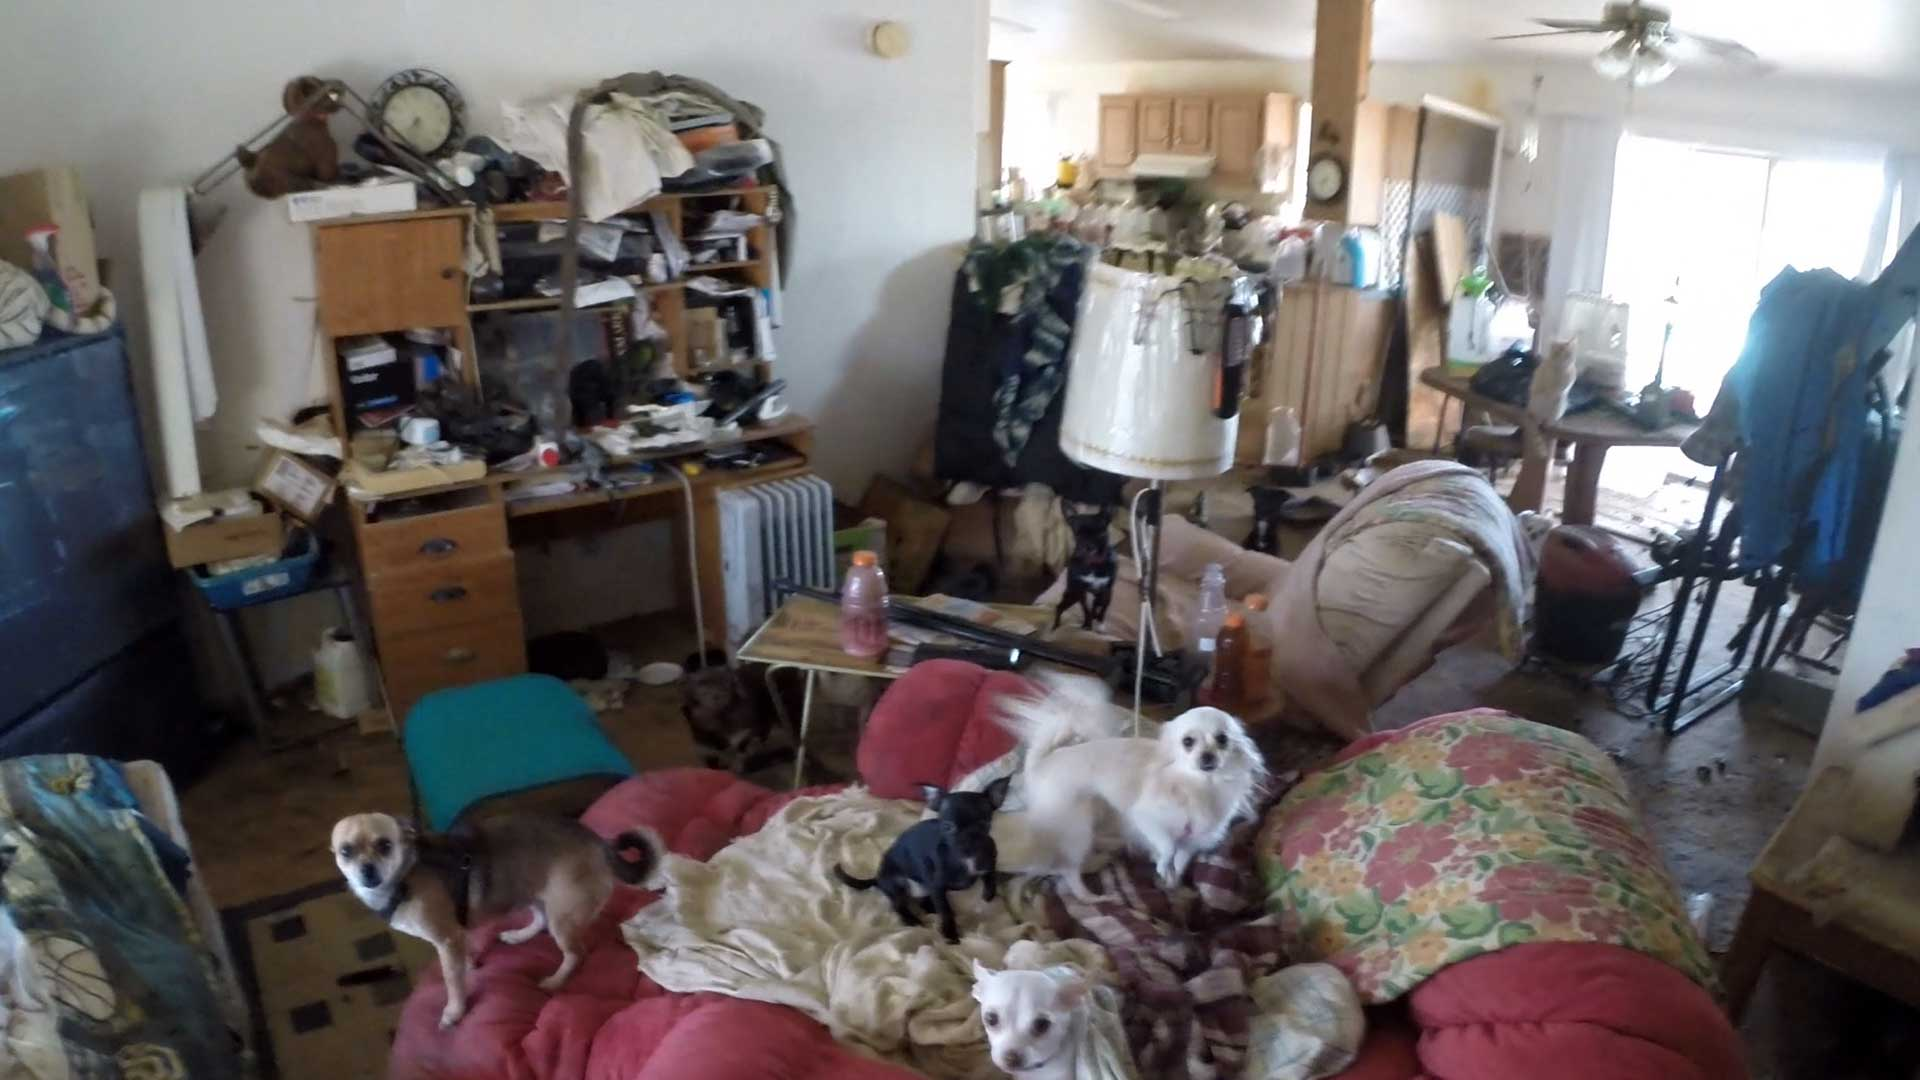 These animals were rescued from filthy conditions in an Arizona mobile home on Wednesday.